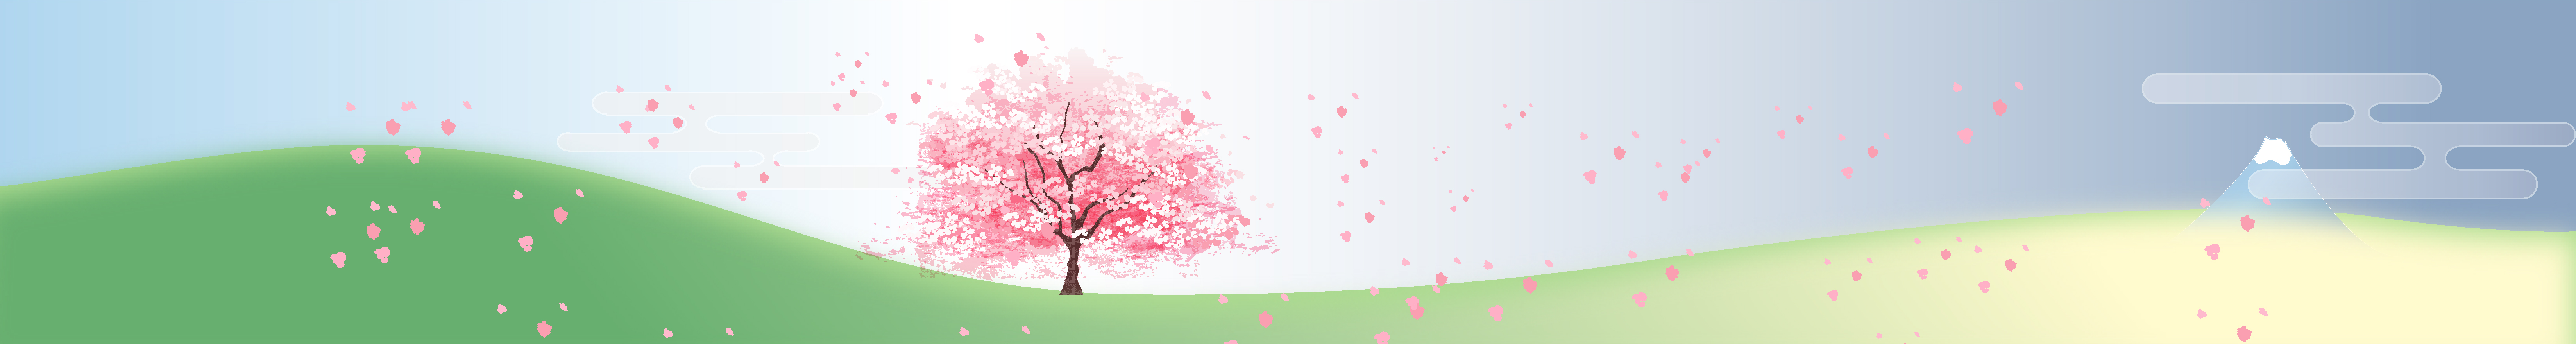 sakura: celebration and sadness…